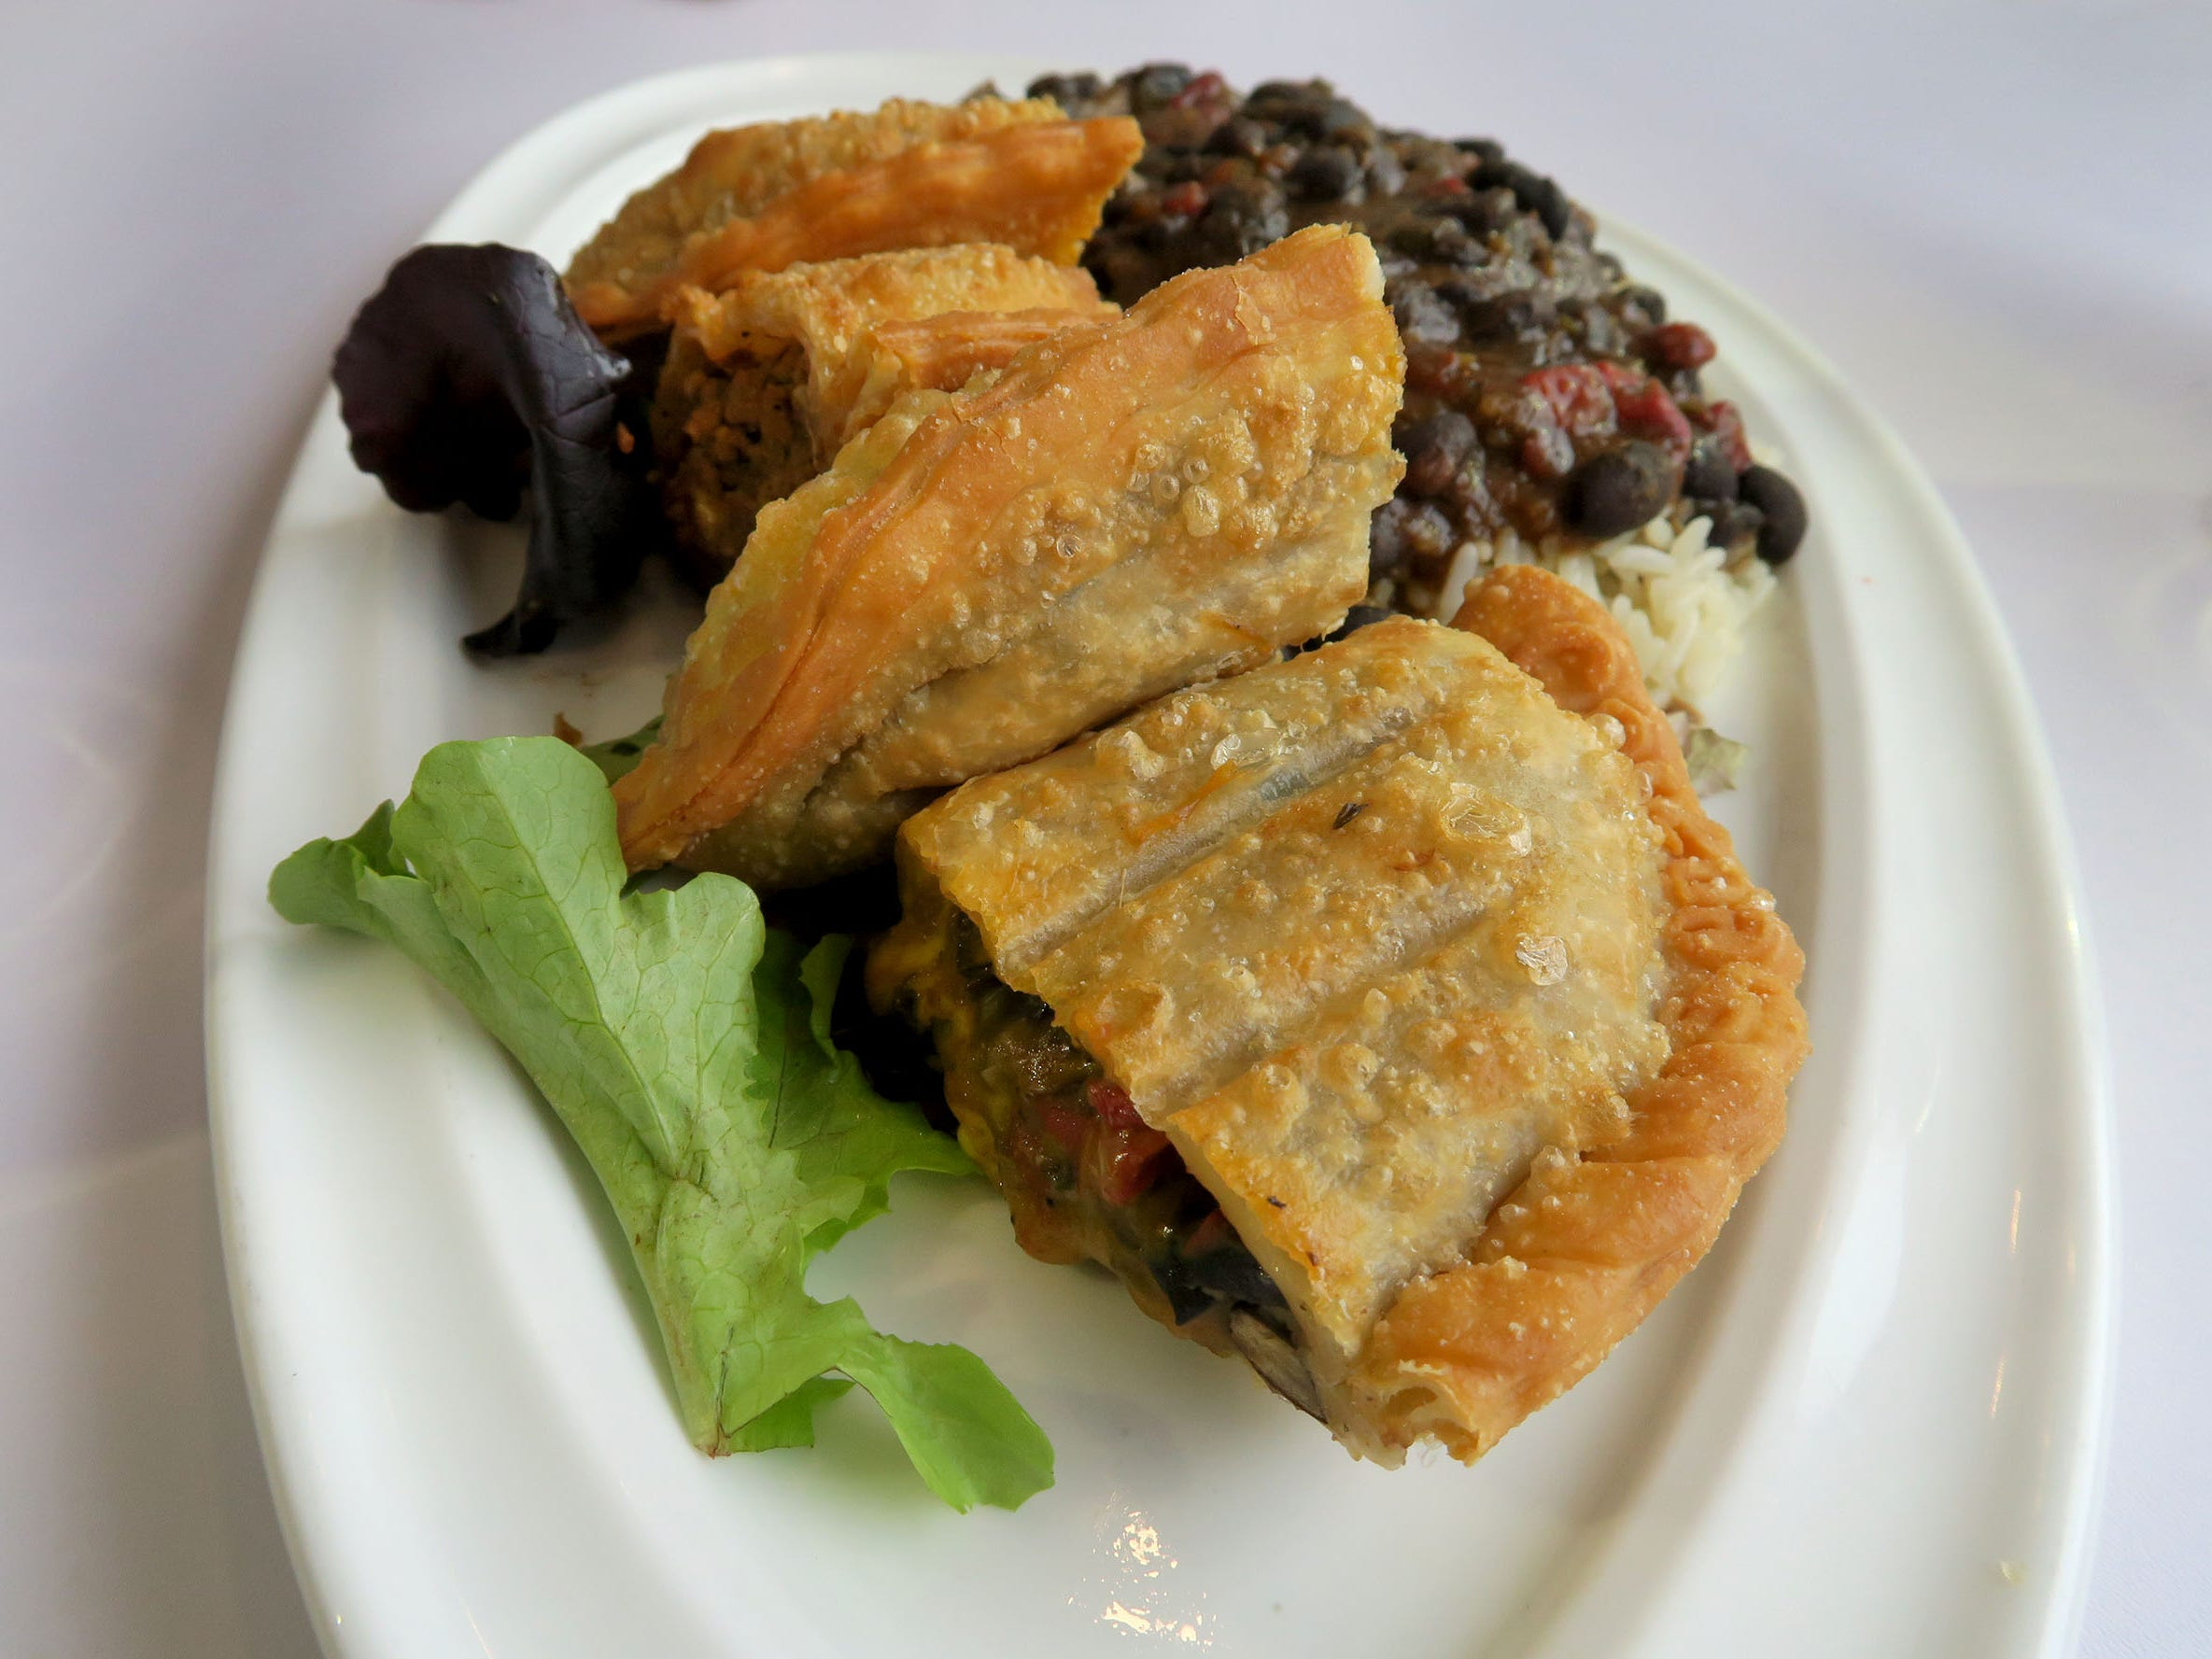 """The Empanada Combo served with a side of black beans and white rice at """"Caneda's White Rooster,"""" a year-old Toms River-based Cuban restaurant on Fischer Boulevard."""